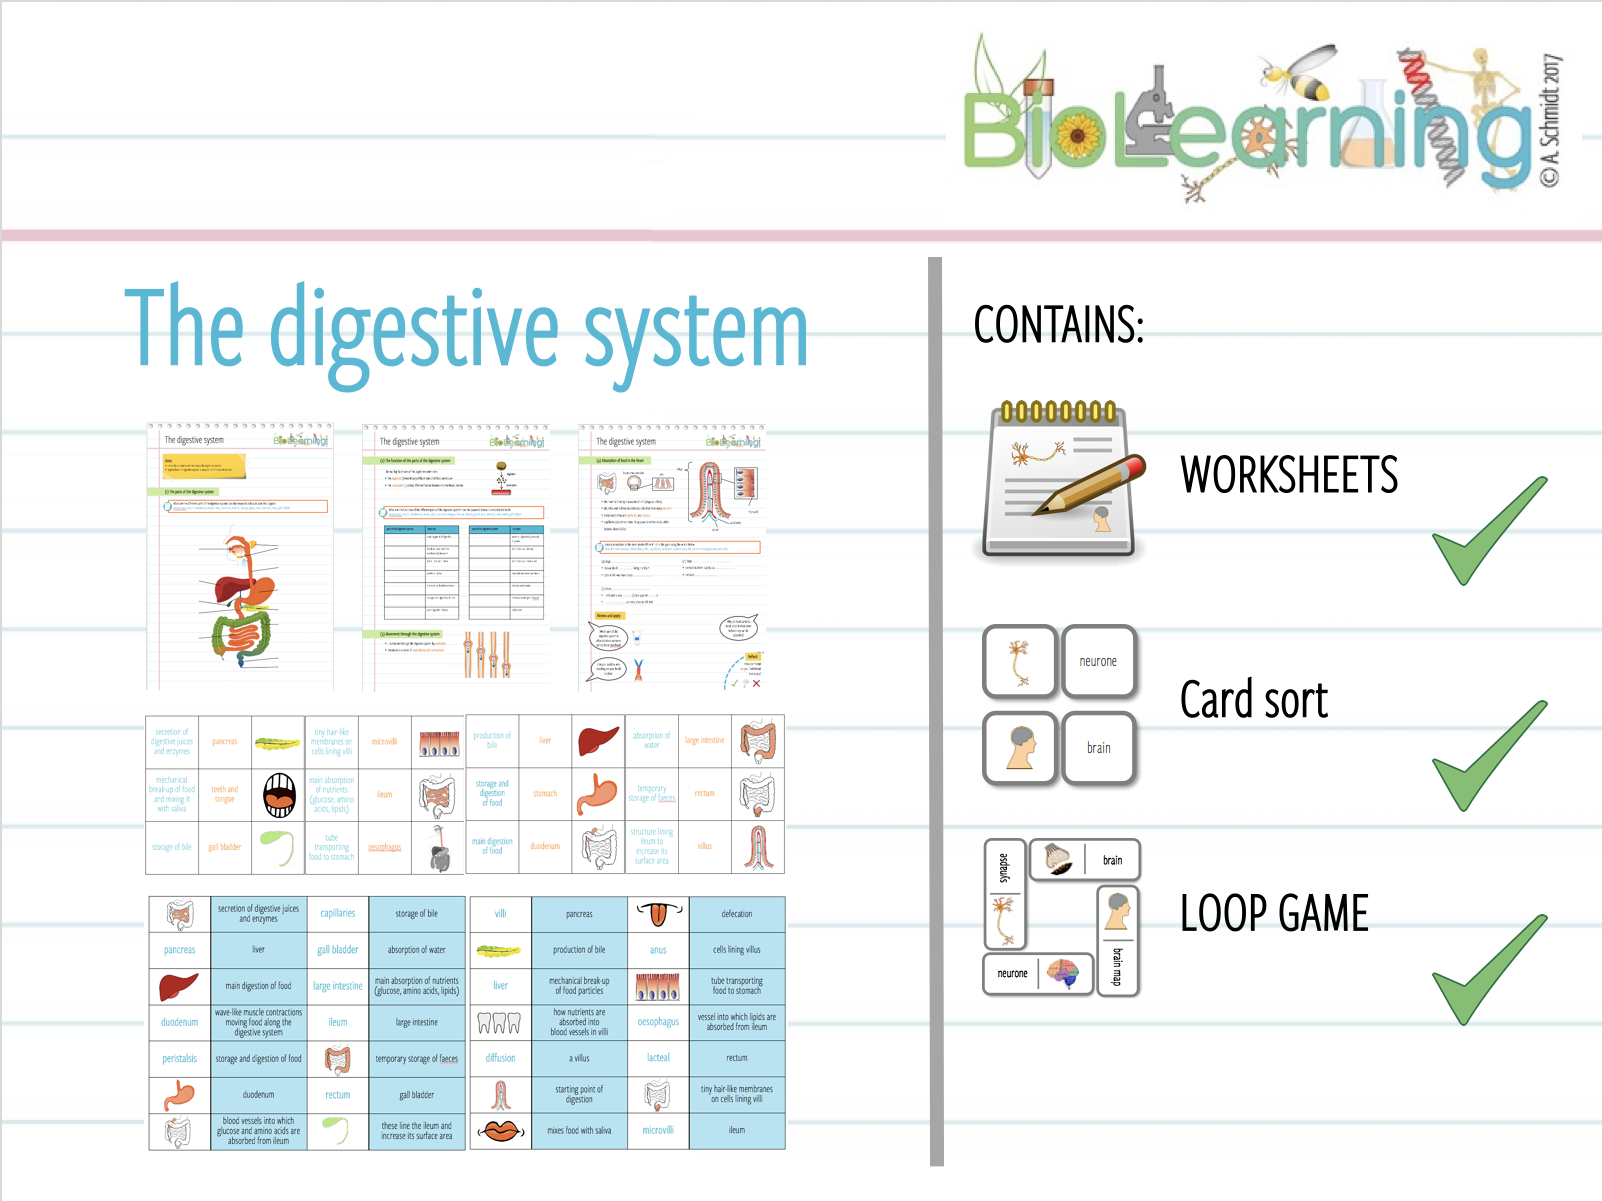 The digestive system - Worksheet, card sort and loop game - 3 resources  (KS3 / KS4)